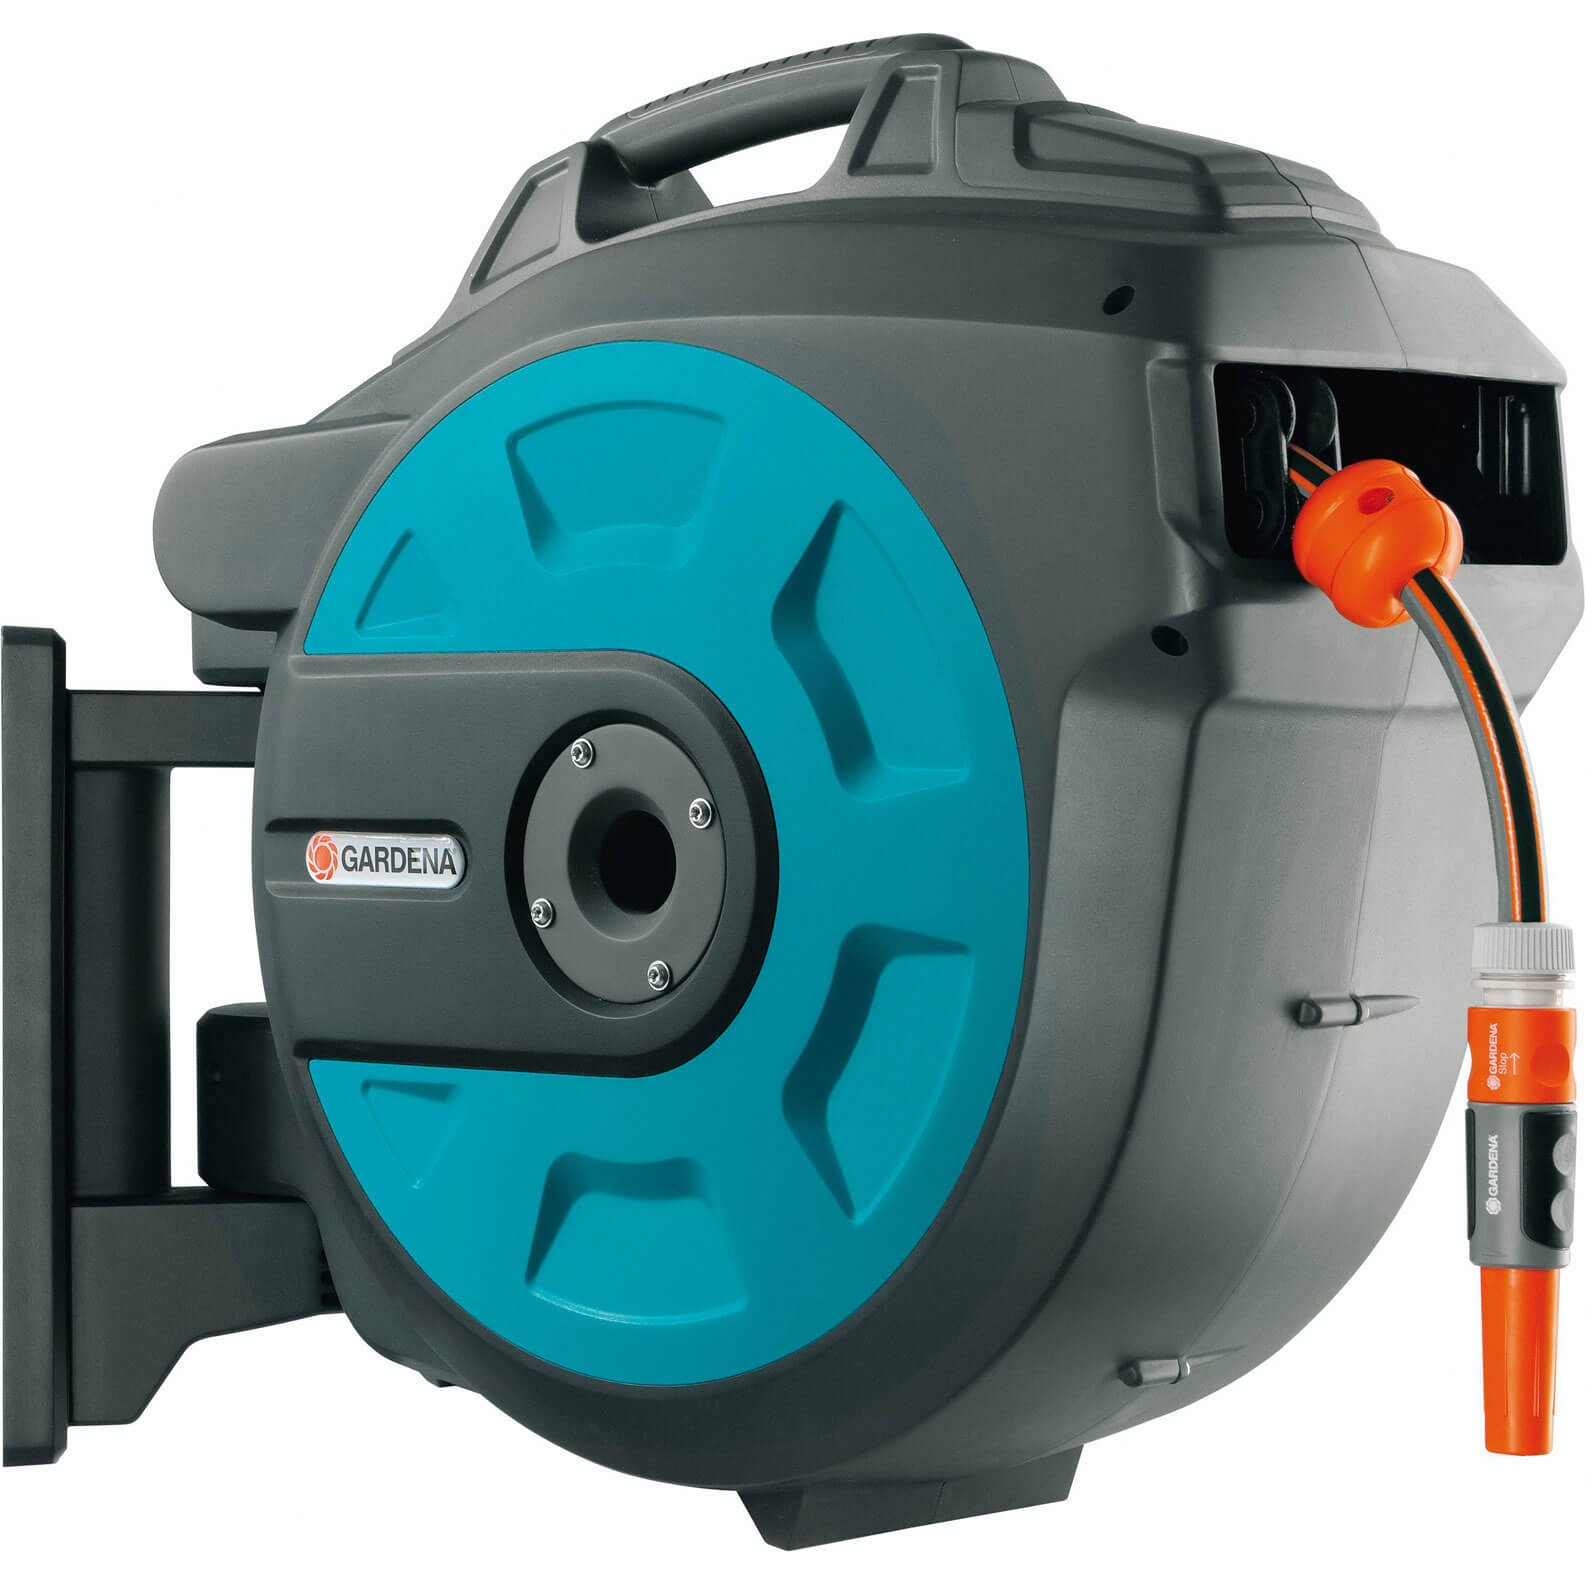 Gardena 35 Metre Wall Mounted Auto Hose Reel with 35 Metre Hose Pipe 12.5mm (1/2&quot)